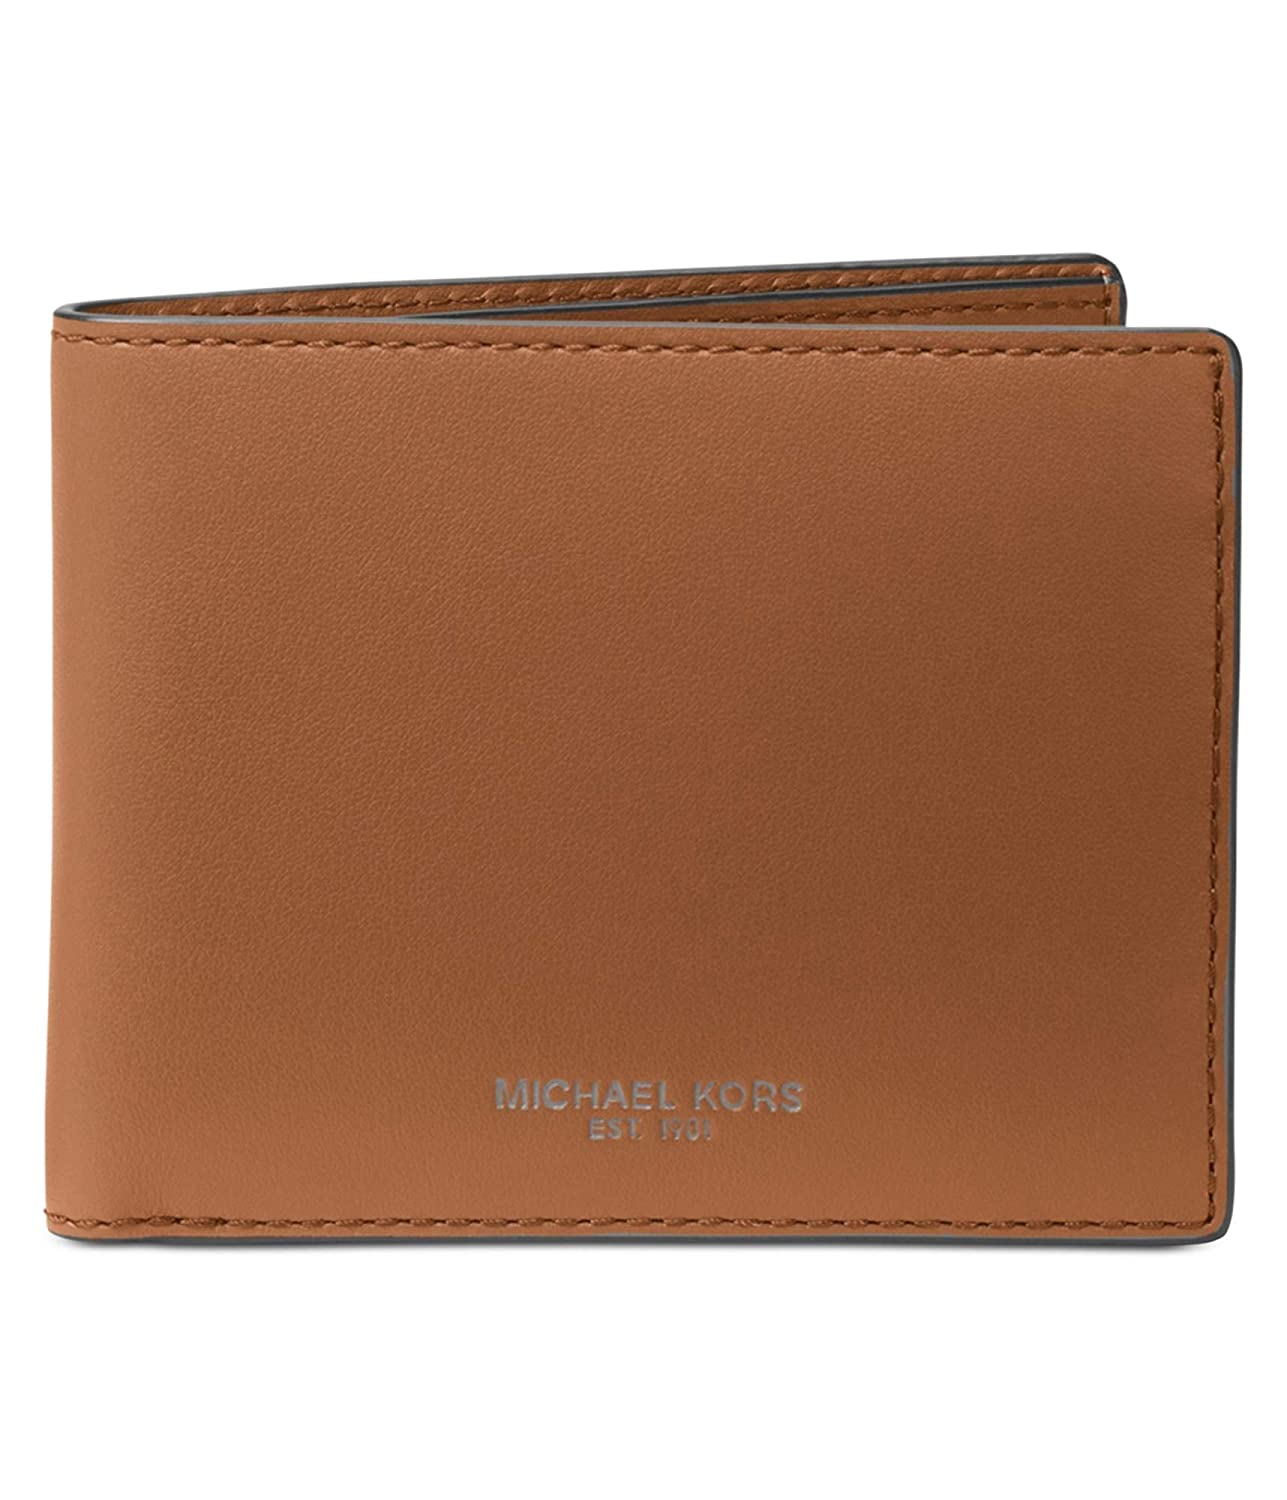 Michael Kors Mens Odin Bifold Wallet: Amazon.es: Ropa y ...